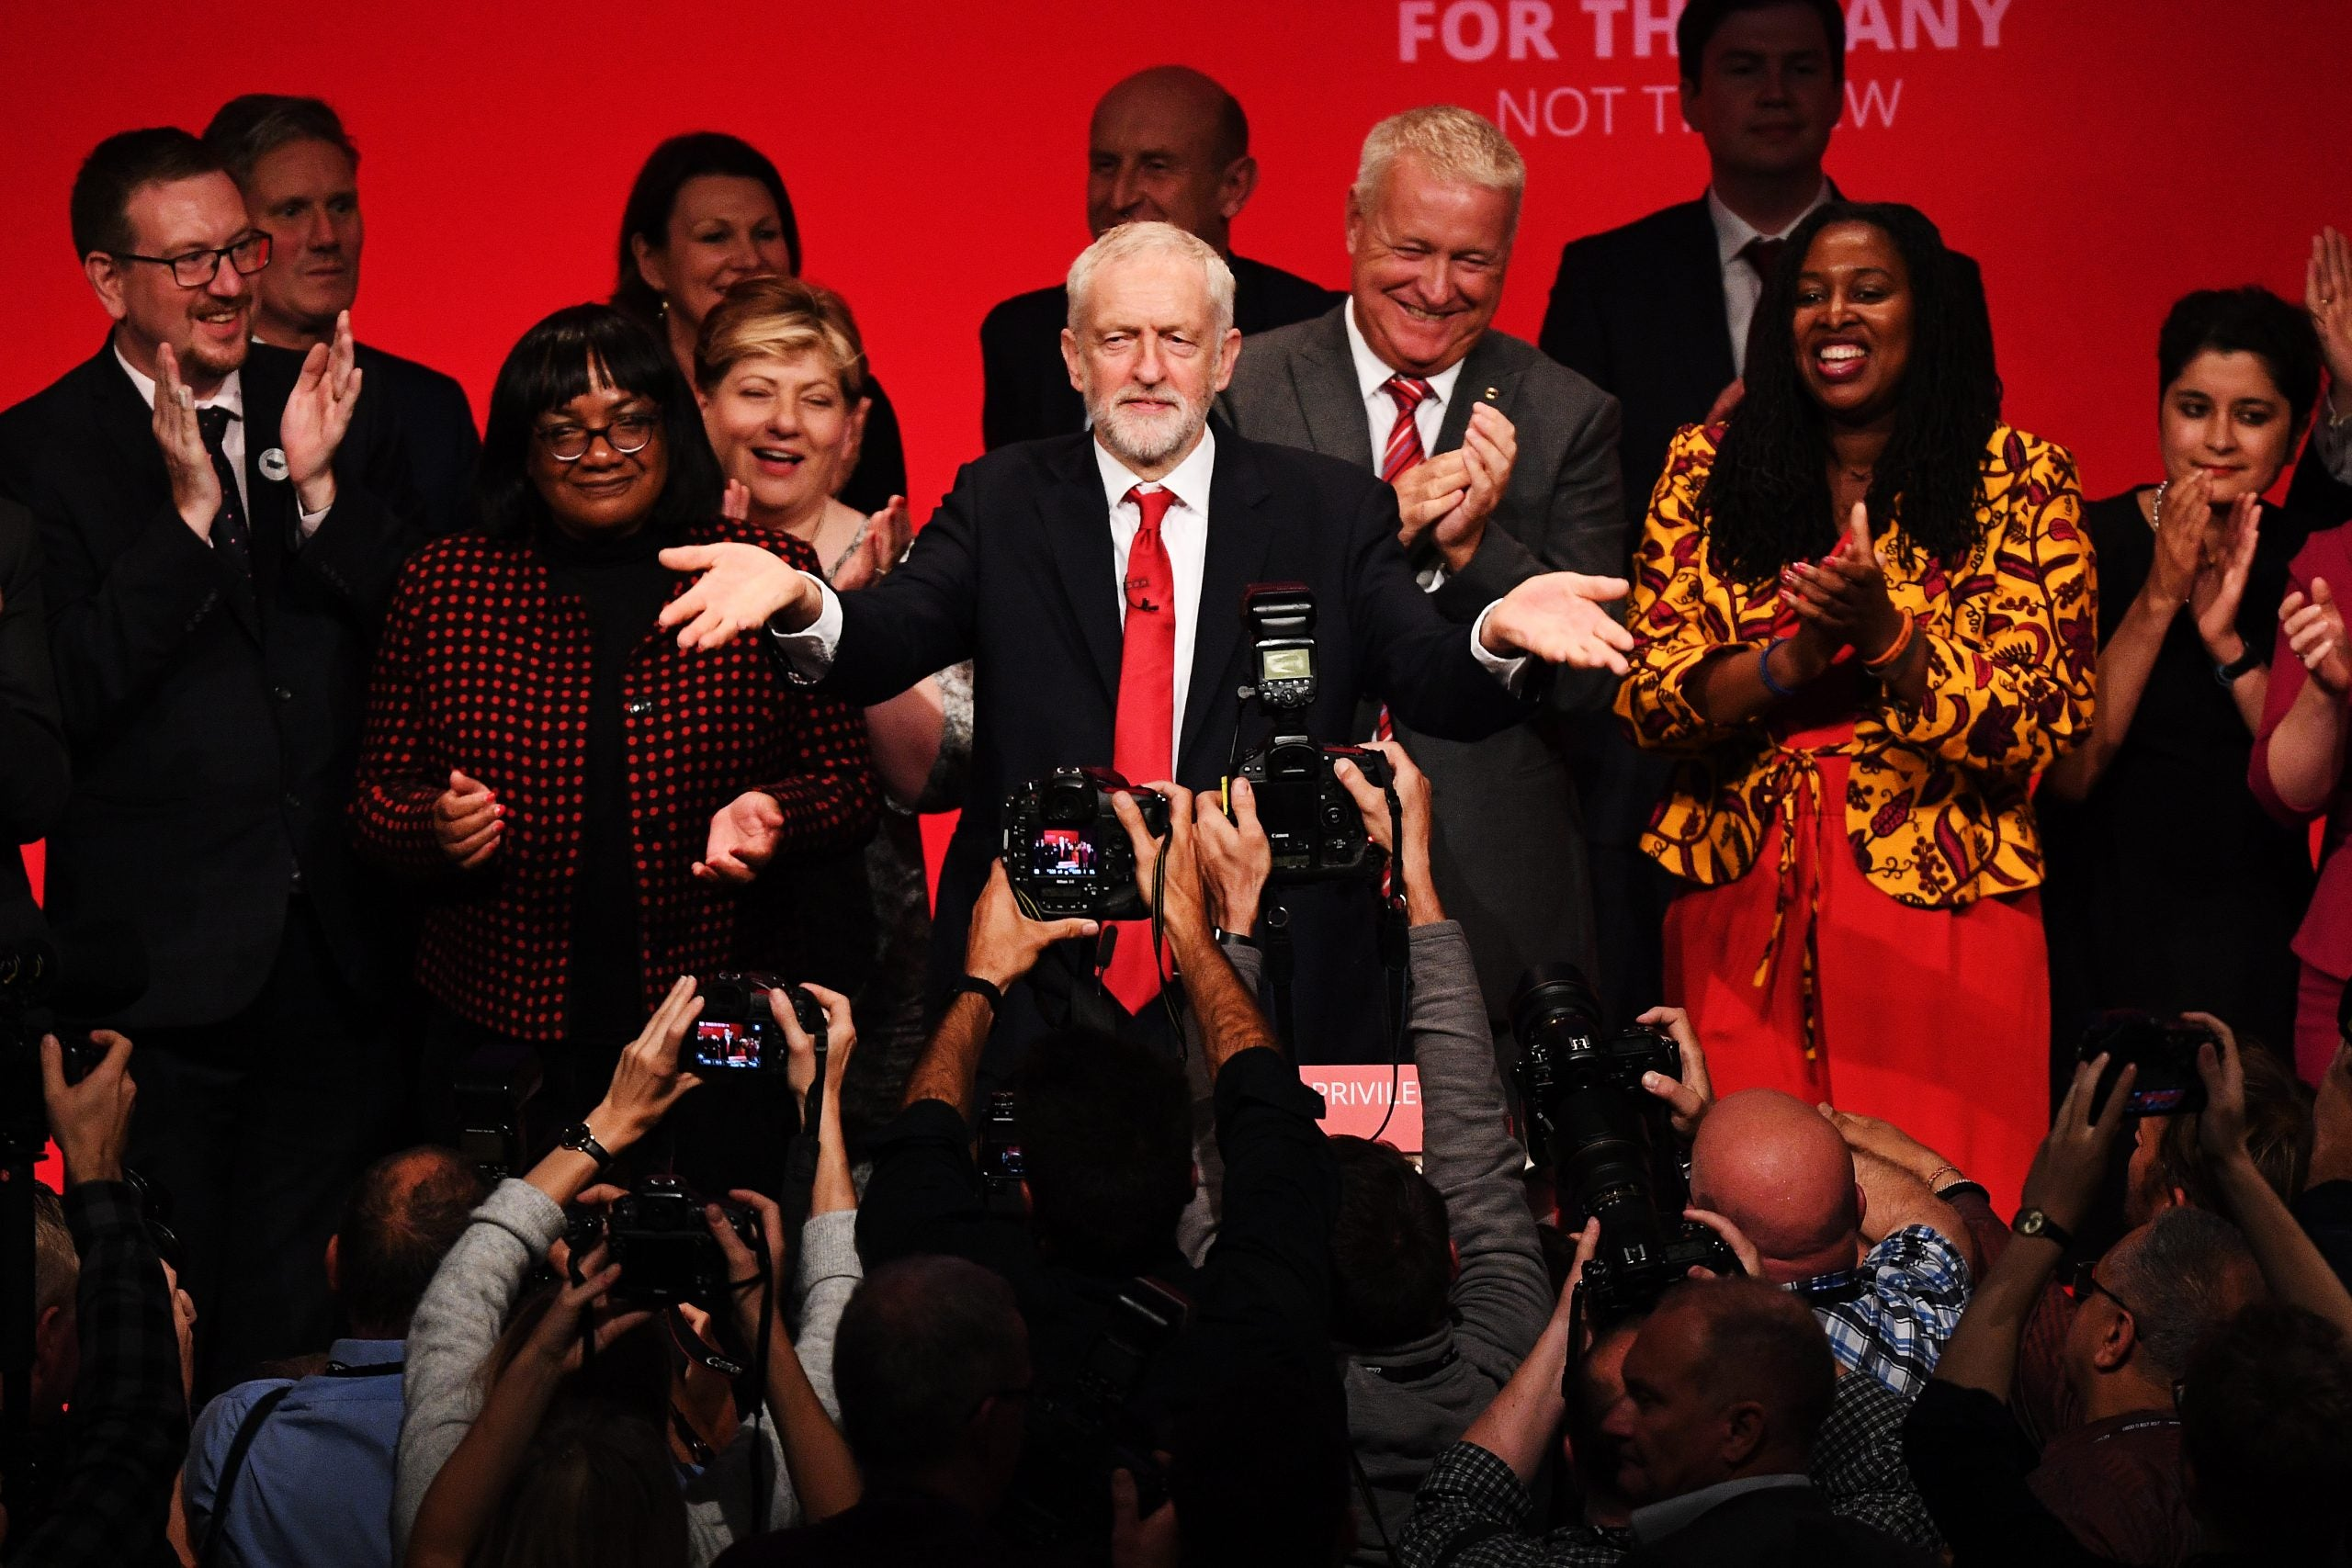 Keir Starmer has alienated the generation Corbyn energised. But can Labour succeed without us?